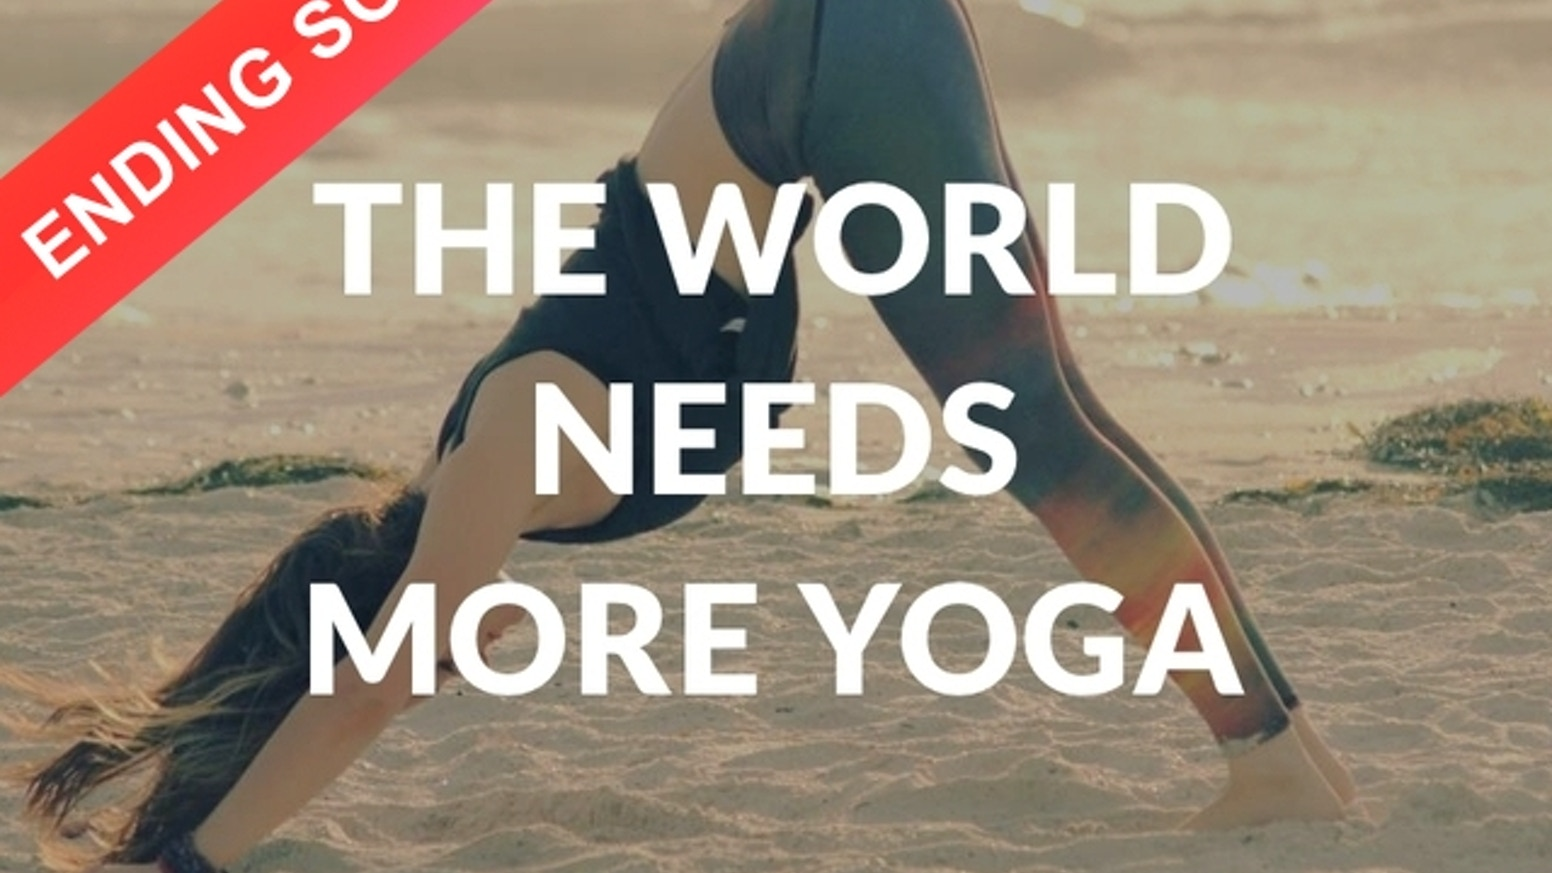 MyYogaPro changes the way you practice yoga at home by making your yoga experience personal, social and rewarding.